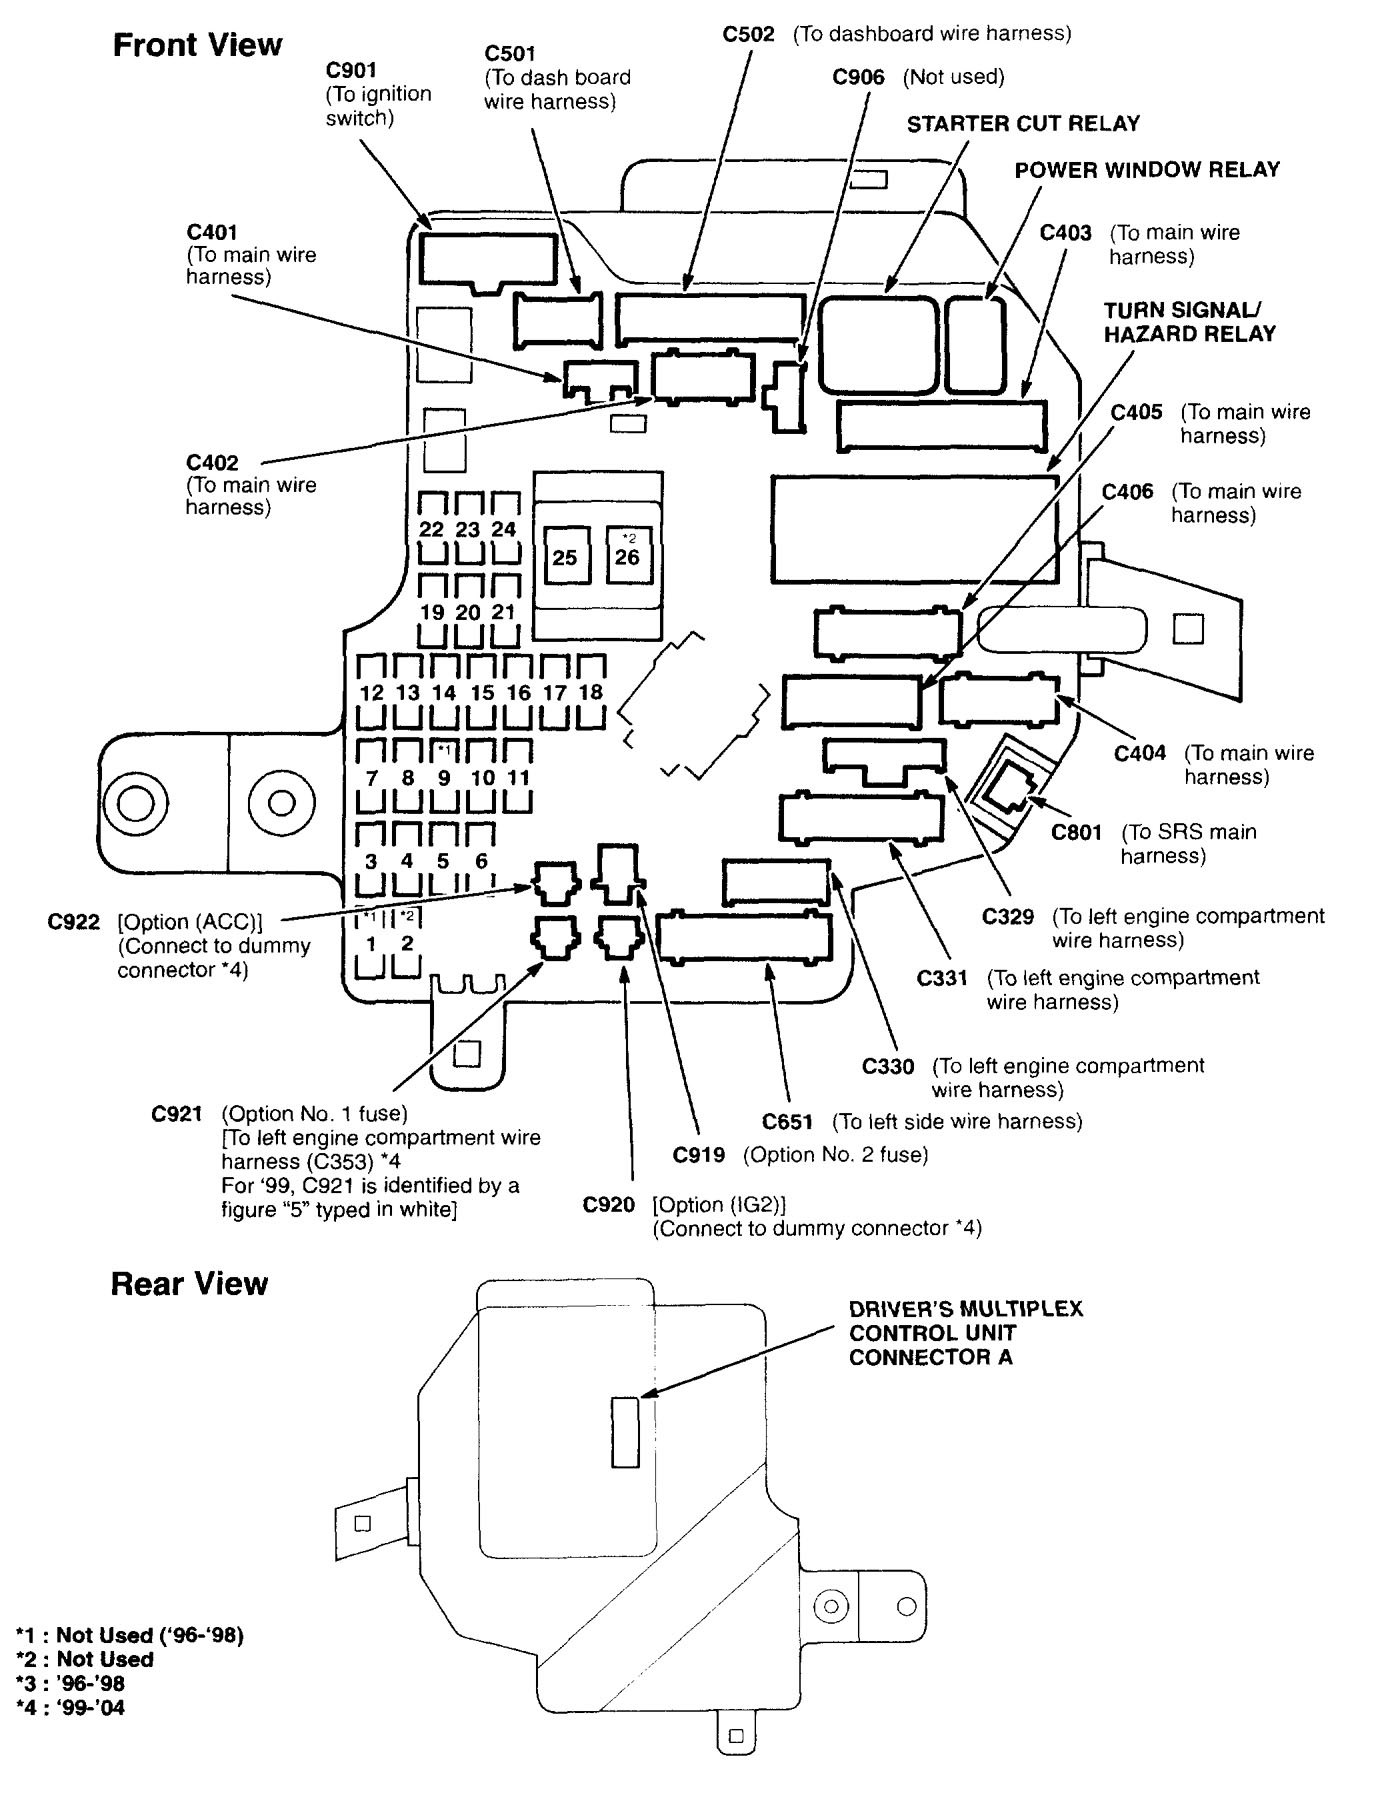 2013 accord fuse box diagram